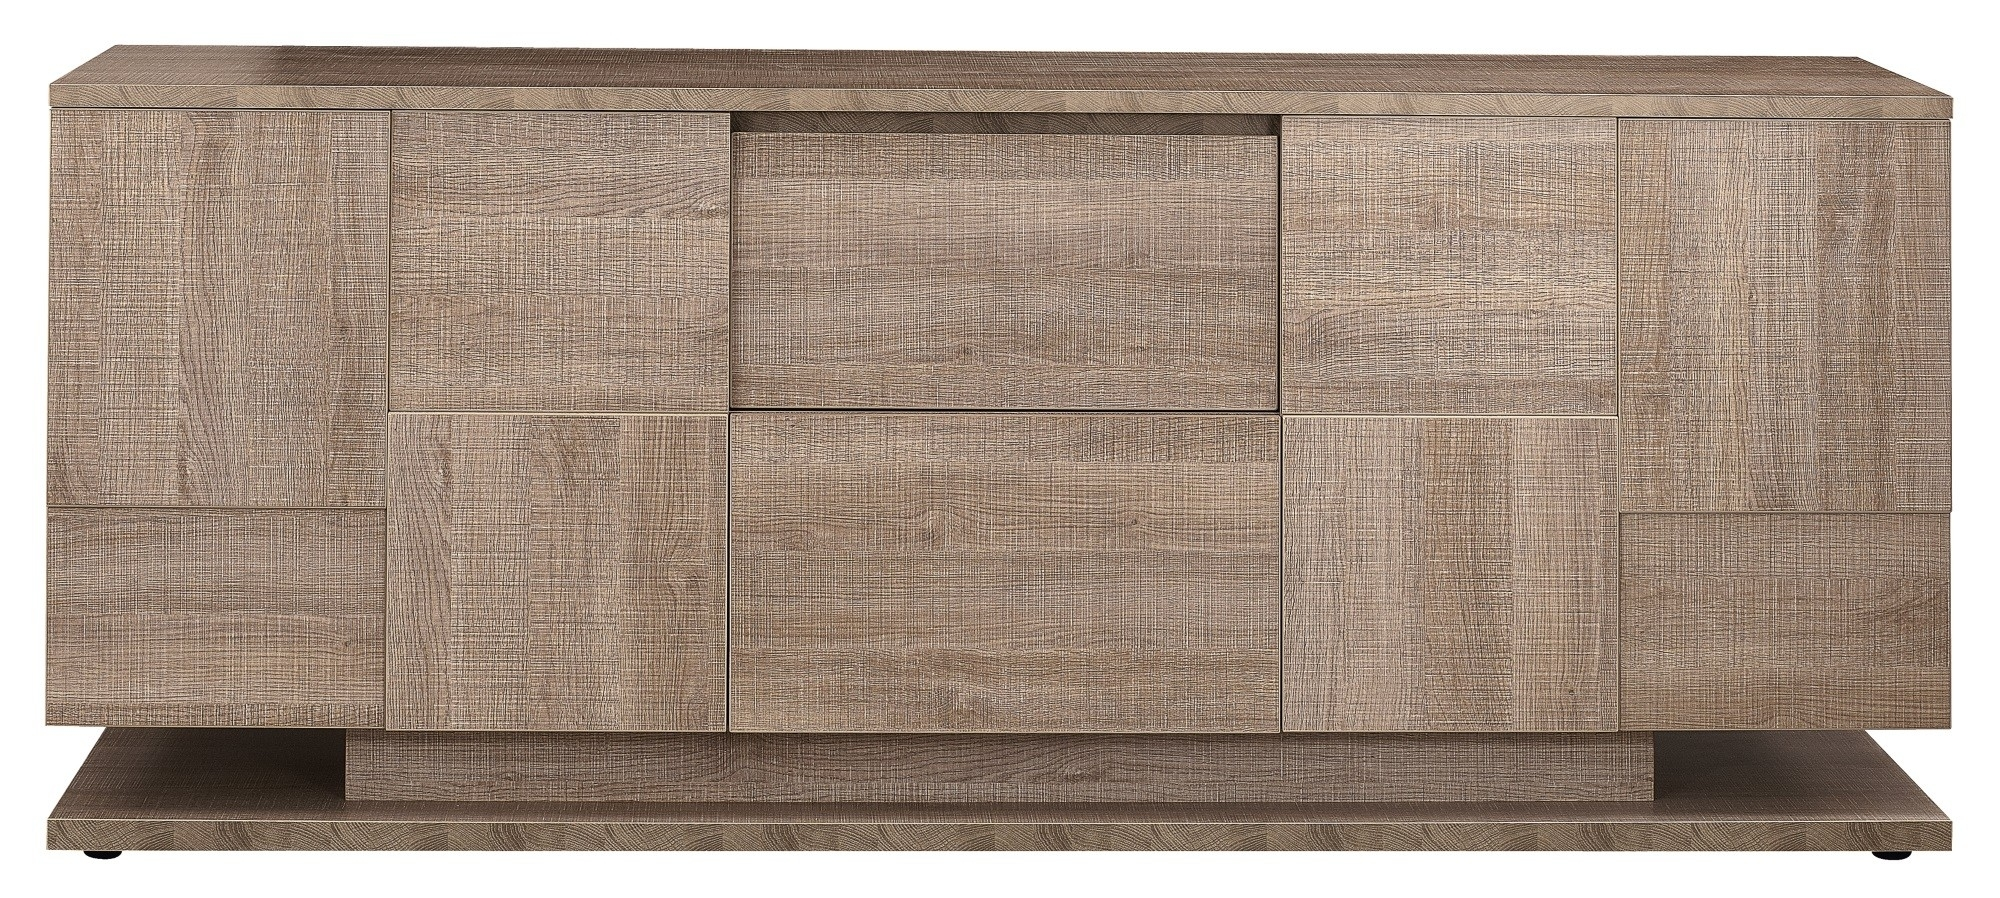 Brem Smoked Oak Sideboard | Style Our Home With Regard To 2018 Dark Smoked Oak With White Marble Top Sideboards (#4 of 20)